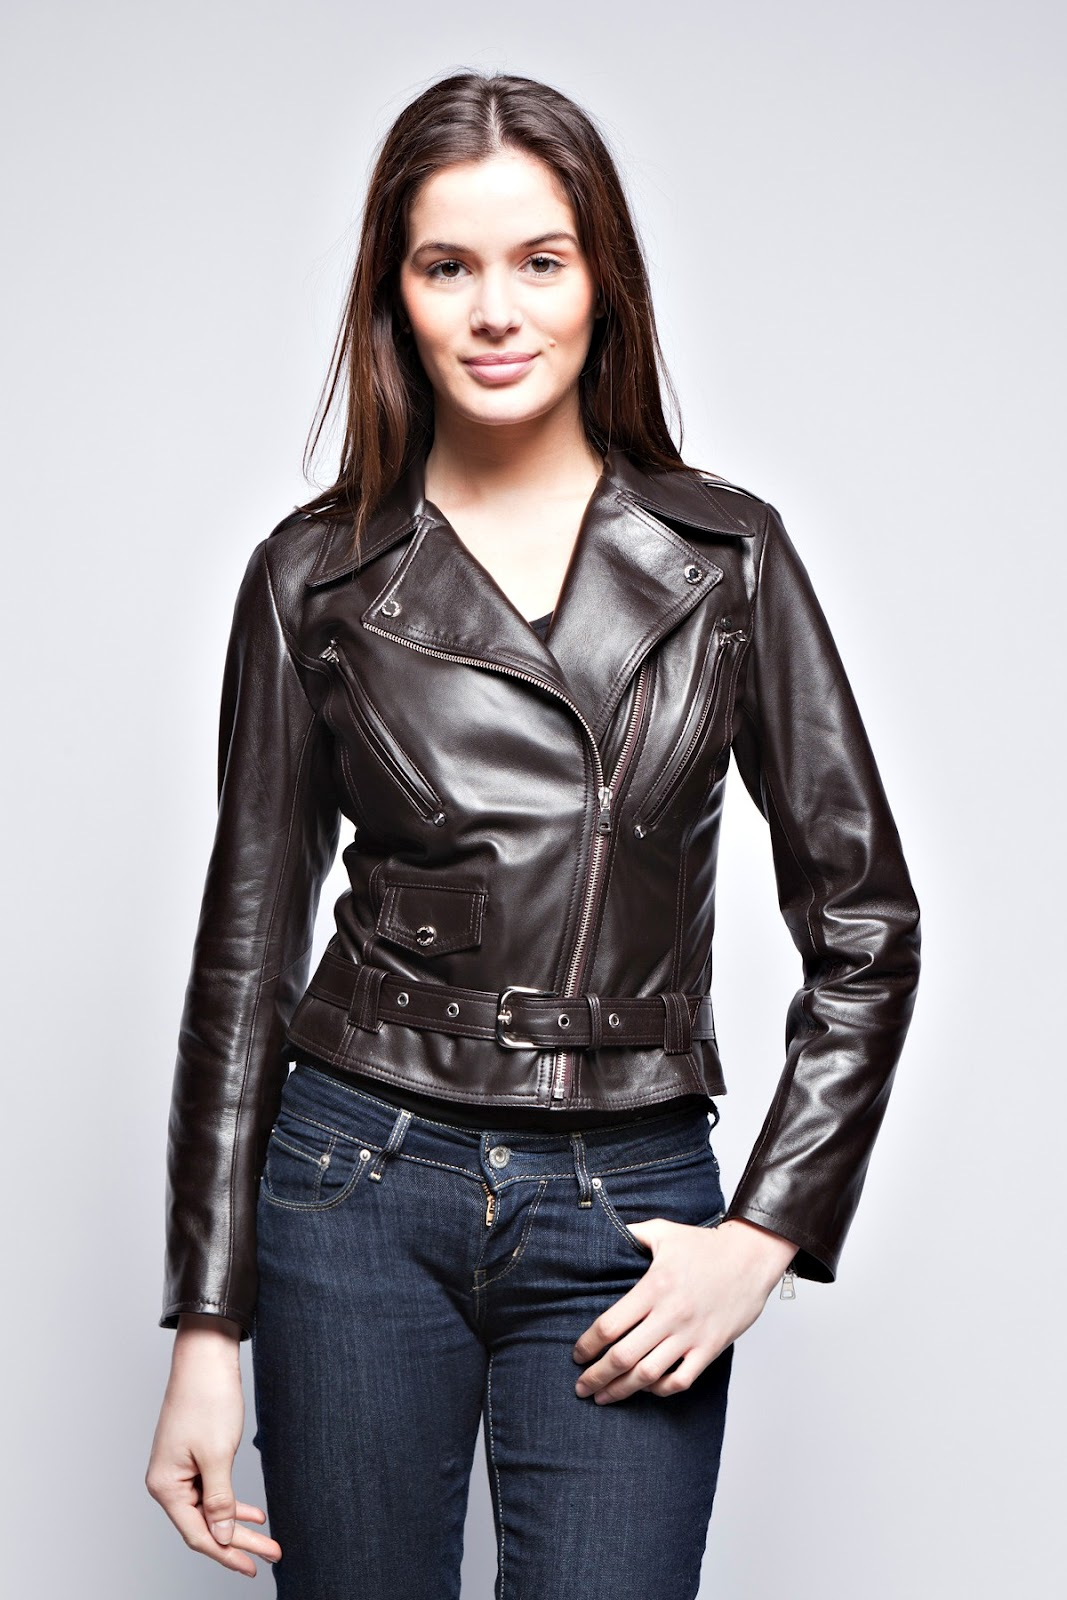 Shop our Collection of Women's Leather Jackets at eacvuazs.ga for the Latest Designer Brands & Styles. FREE SHIPPING AVAILABLE!